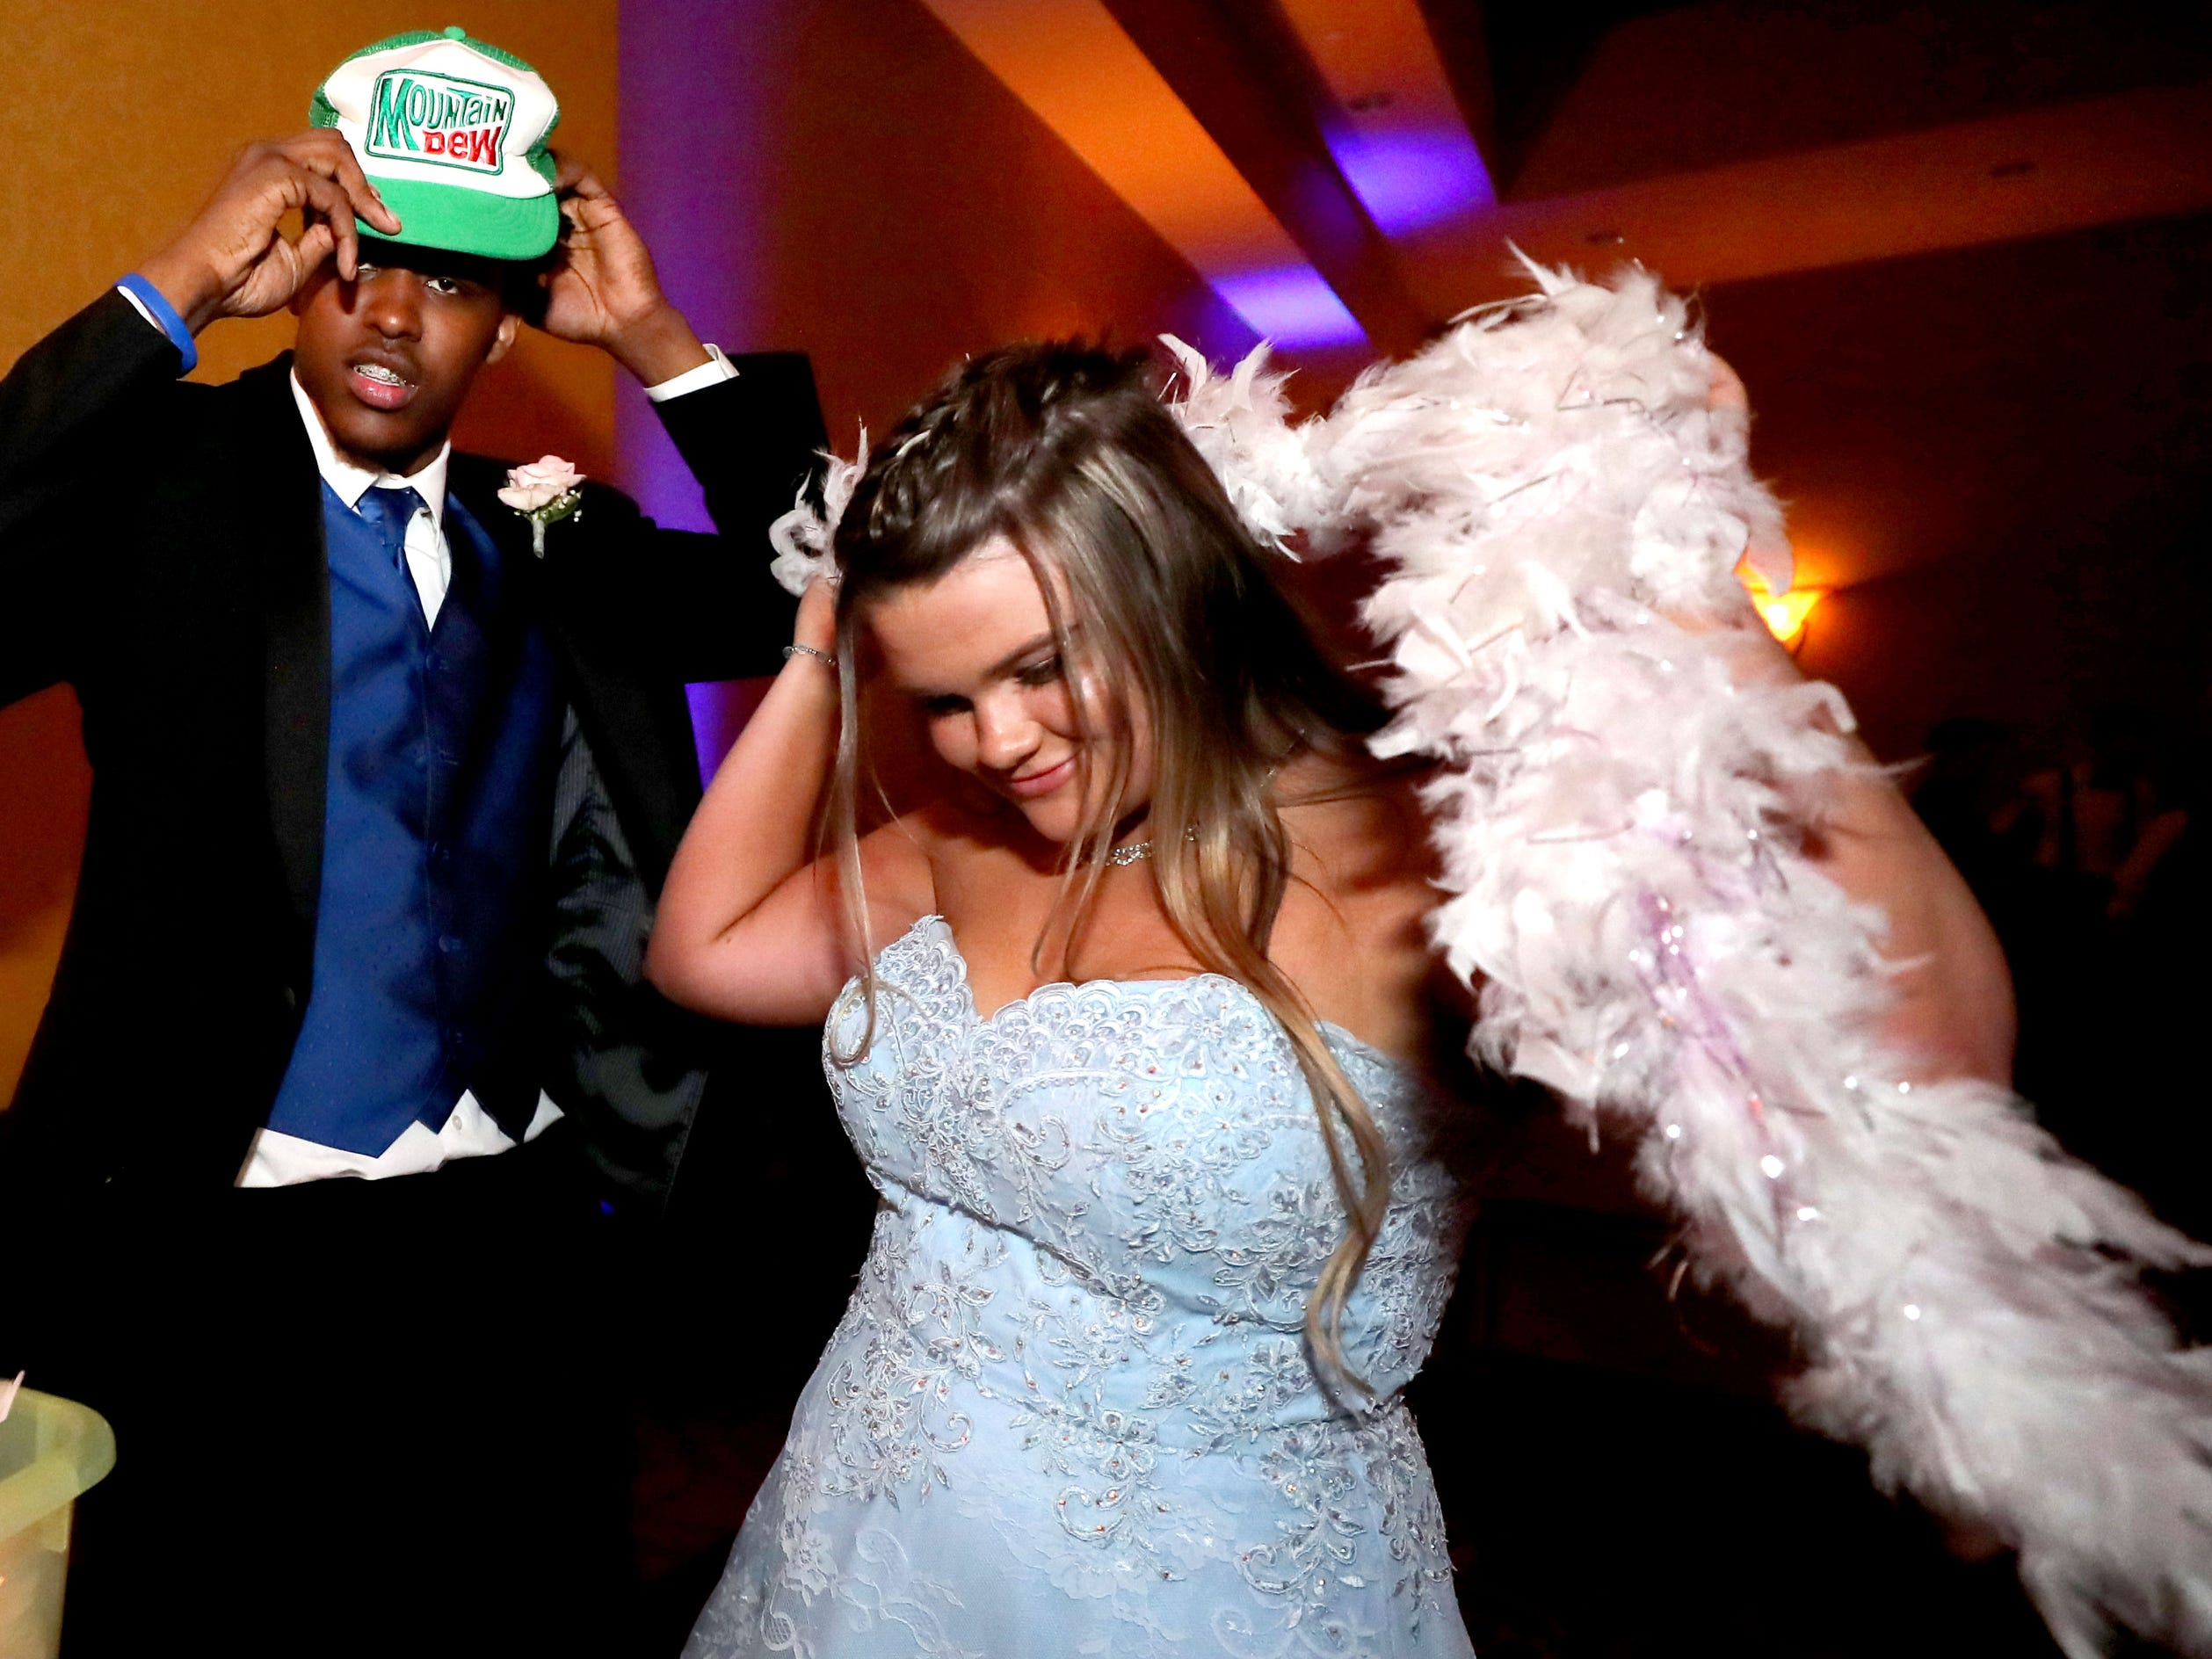 DeMarious Stoudemire, left and Kayleigh Martin, right try on costumes for a picture at Eagleville's Prom held at Embassy Suites, in Murfreesboro on Thursday April 5, 2019.